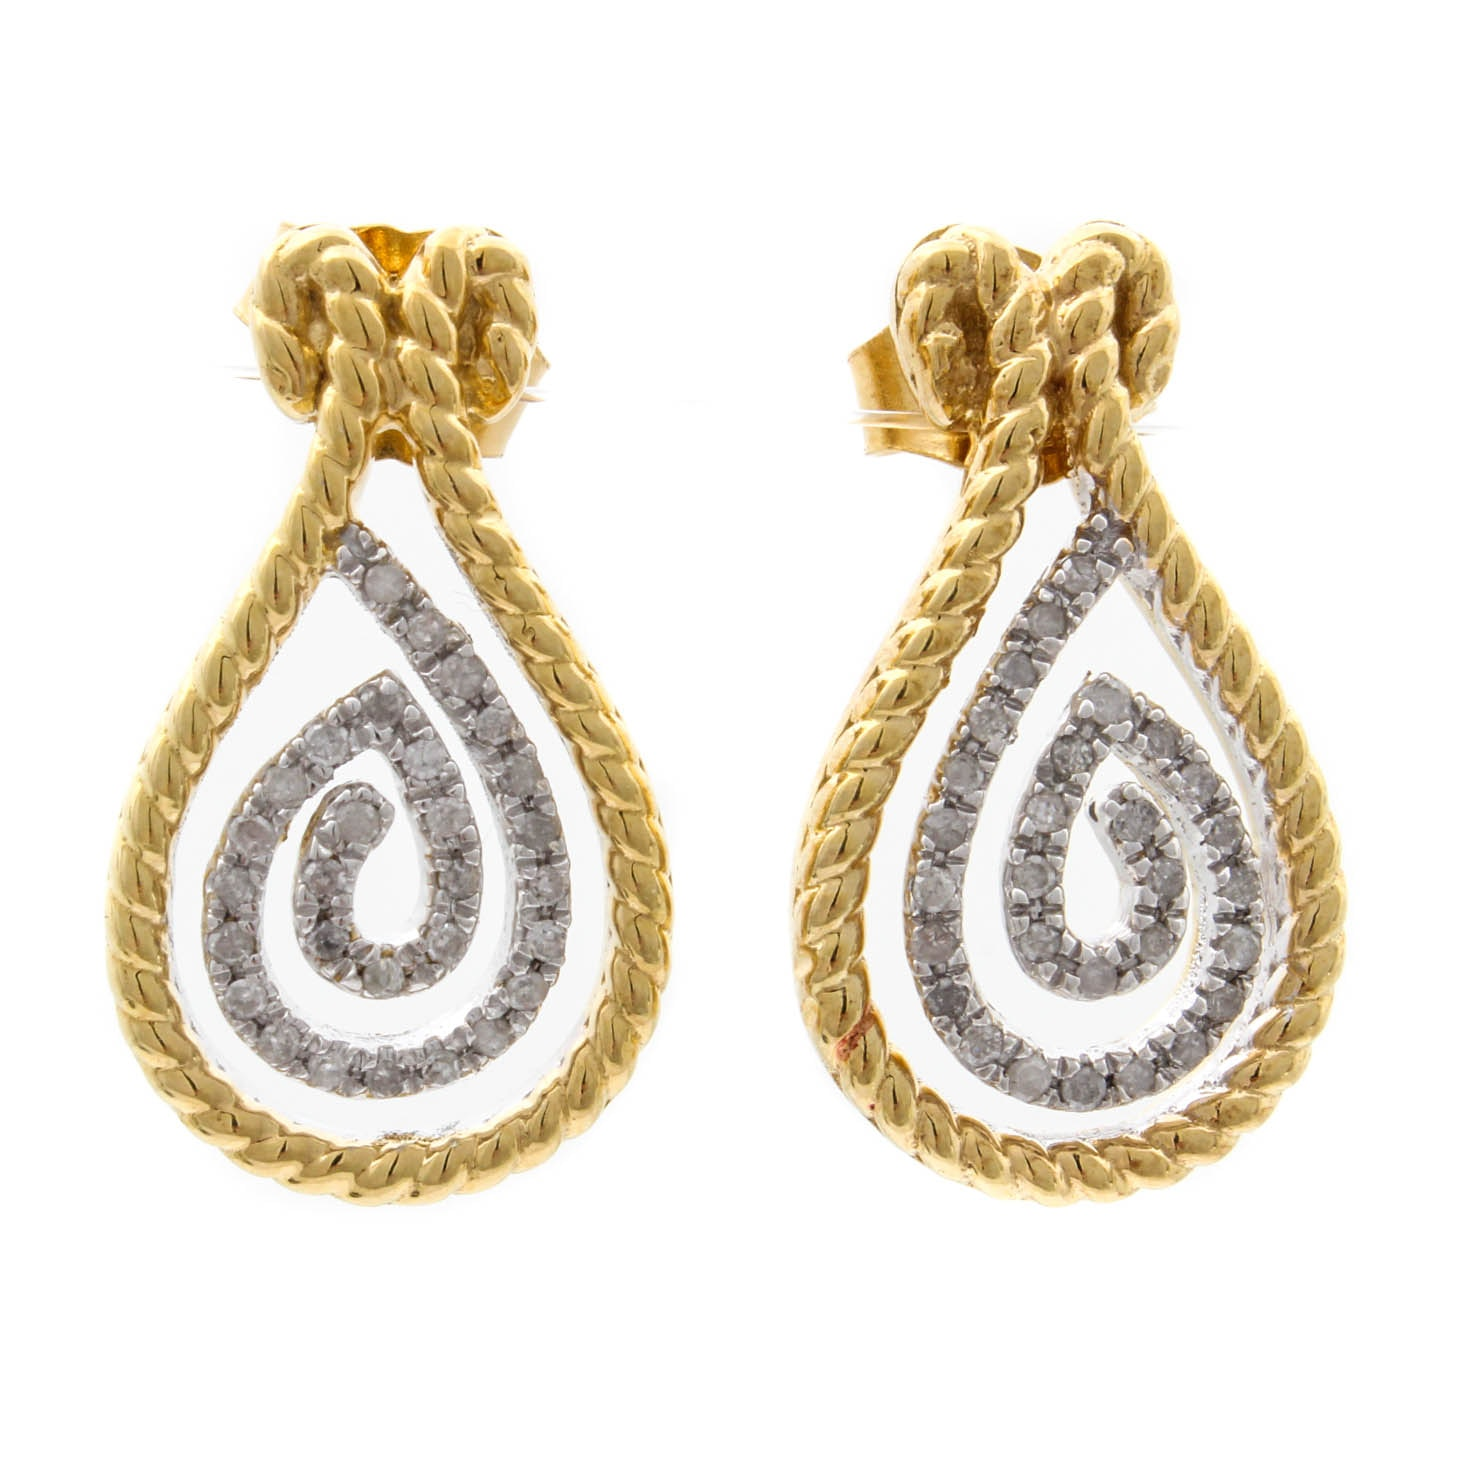 Gold Wash on Sterling Silver and Diamond Earrings